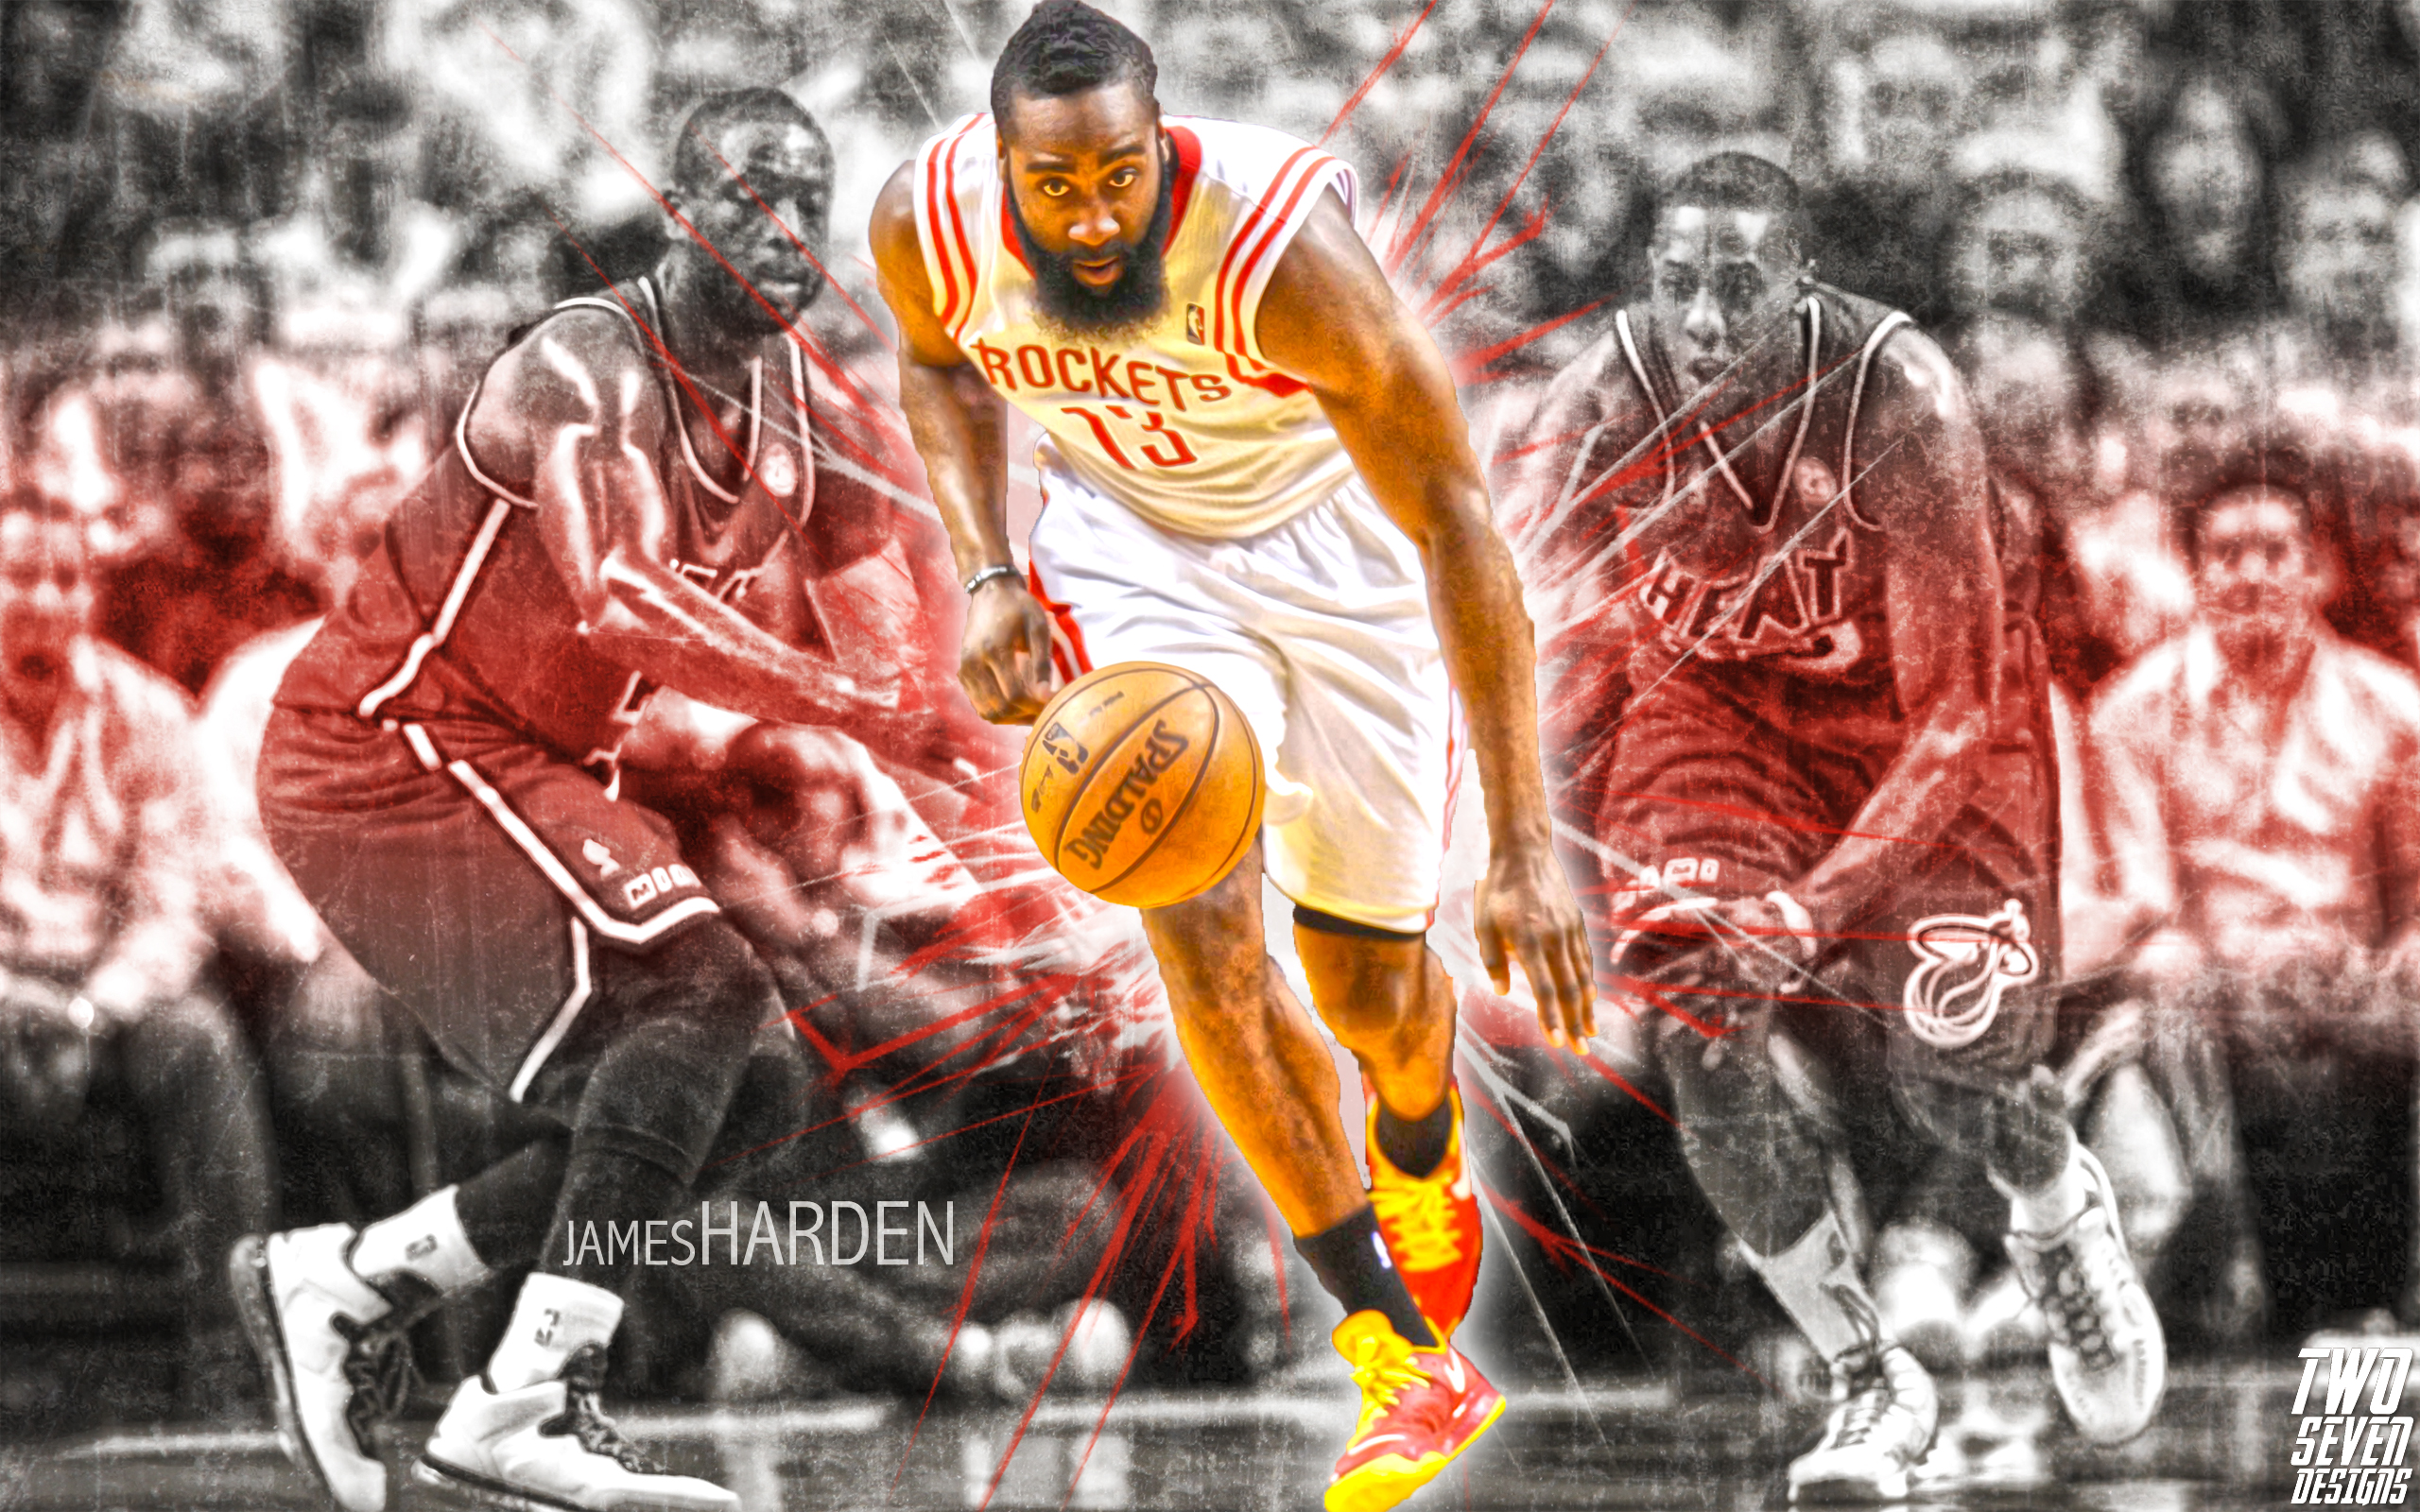 Basketball Player James Harden Wallpaper: 2014 NBA Wallpapers